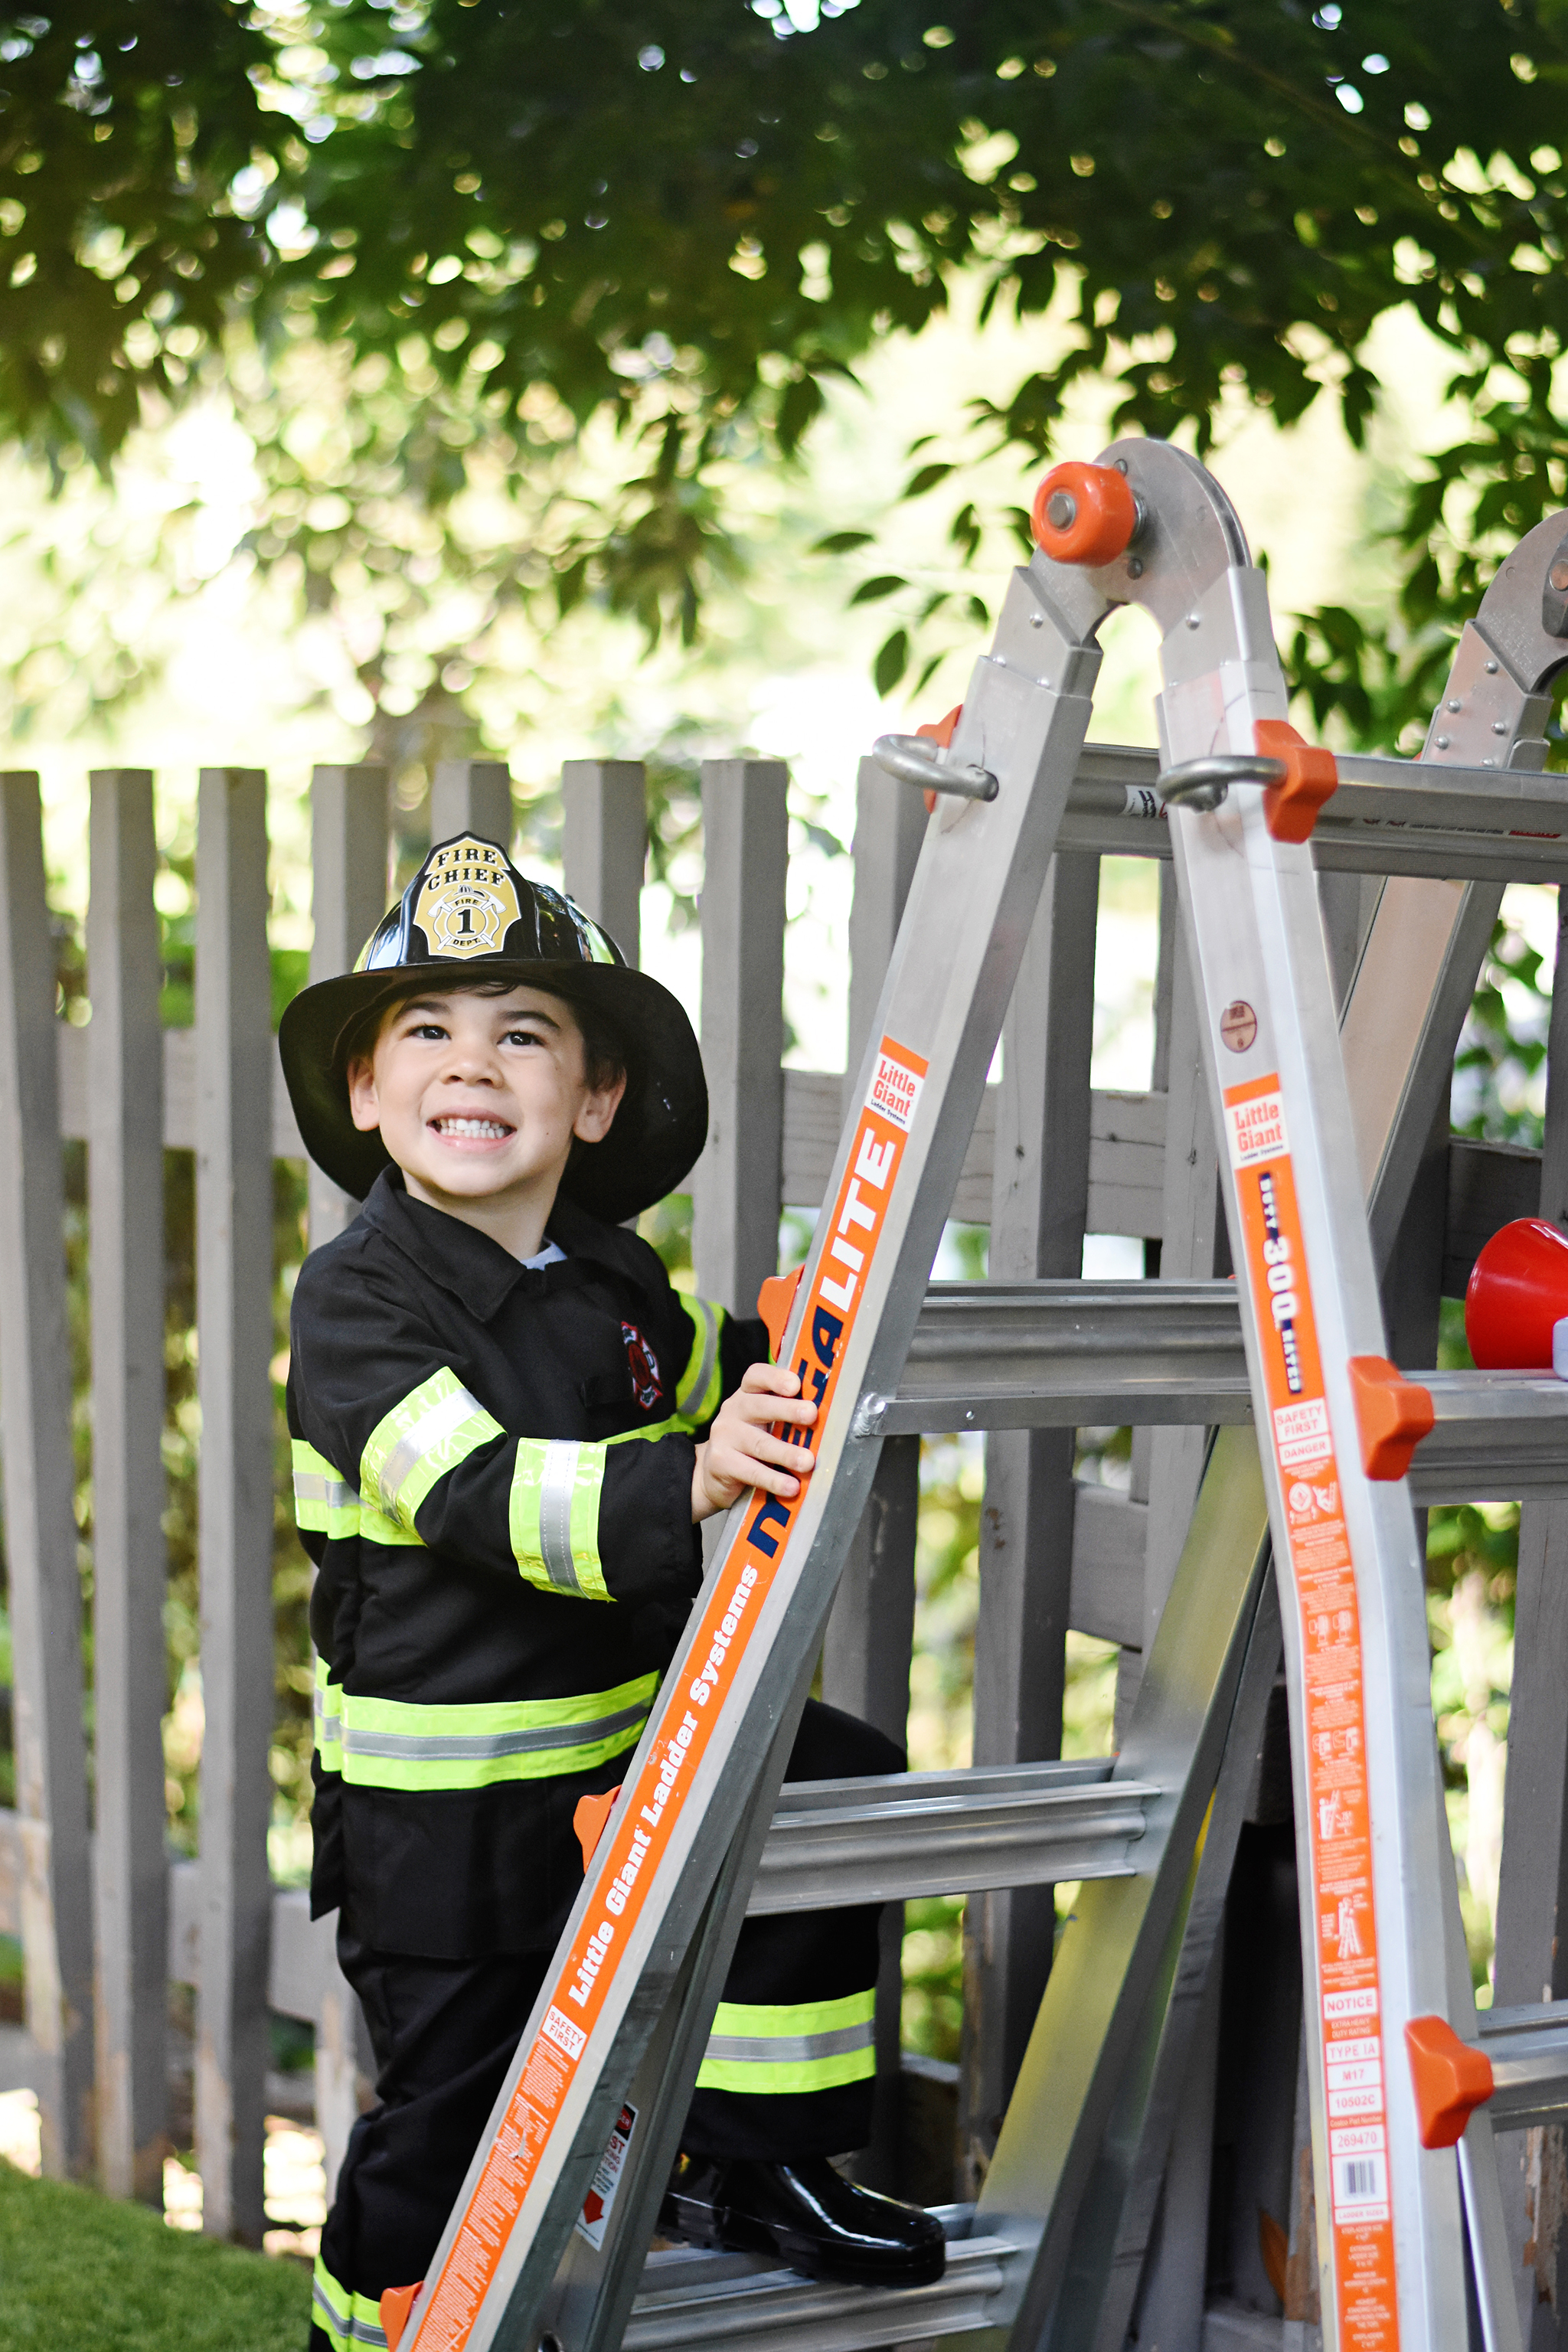 Climb a real ladder just like a firefighter